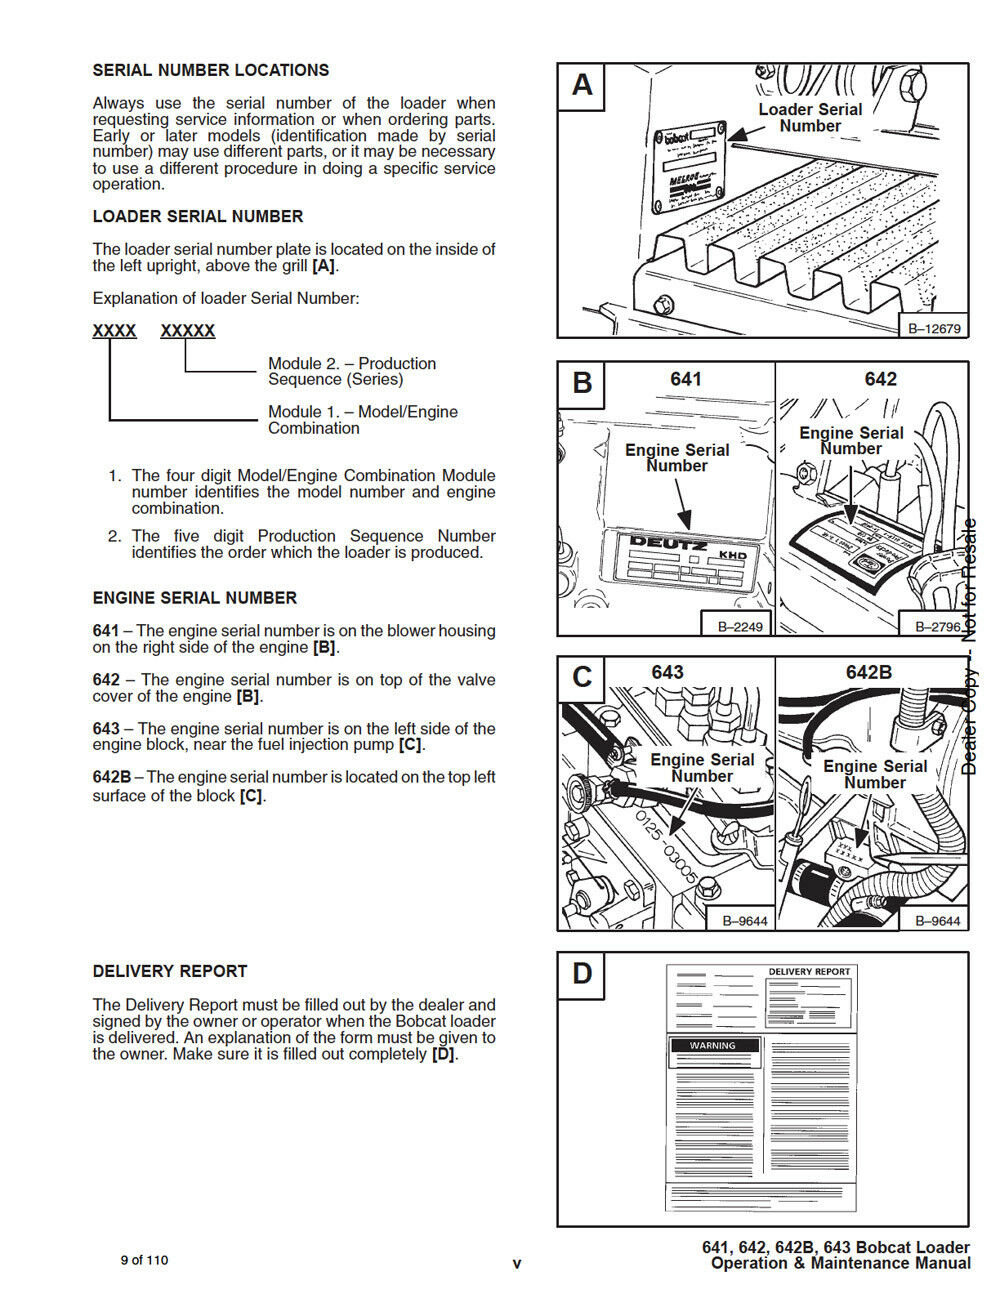 medium resolution of 642 bobcat wiring diagram layout wiring diagrams u2022 rh laurafinlay co uk bobcat skid steer wiring